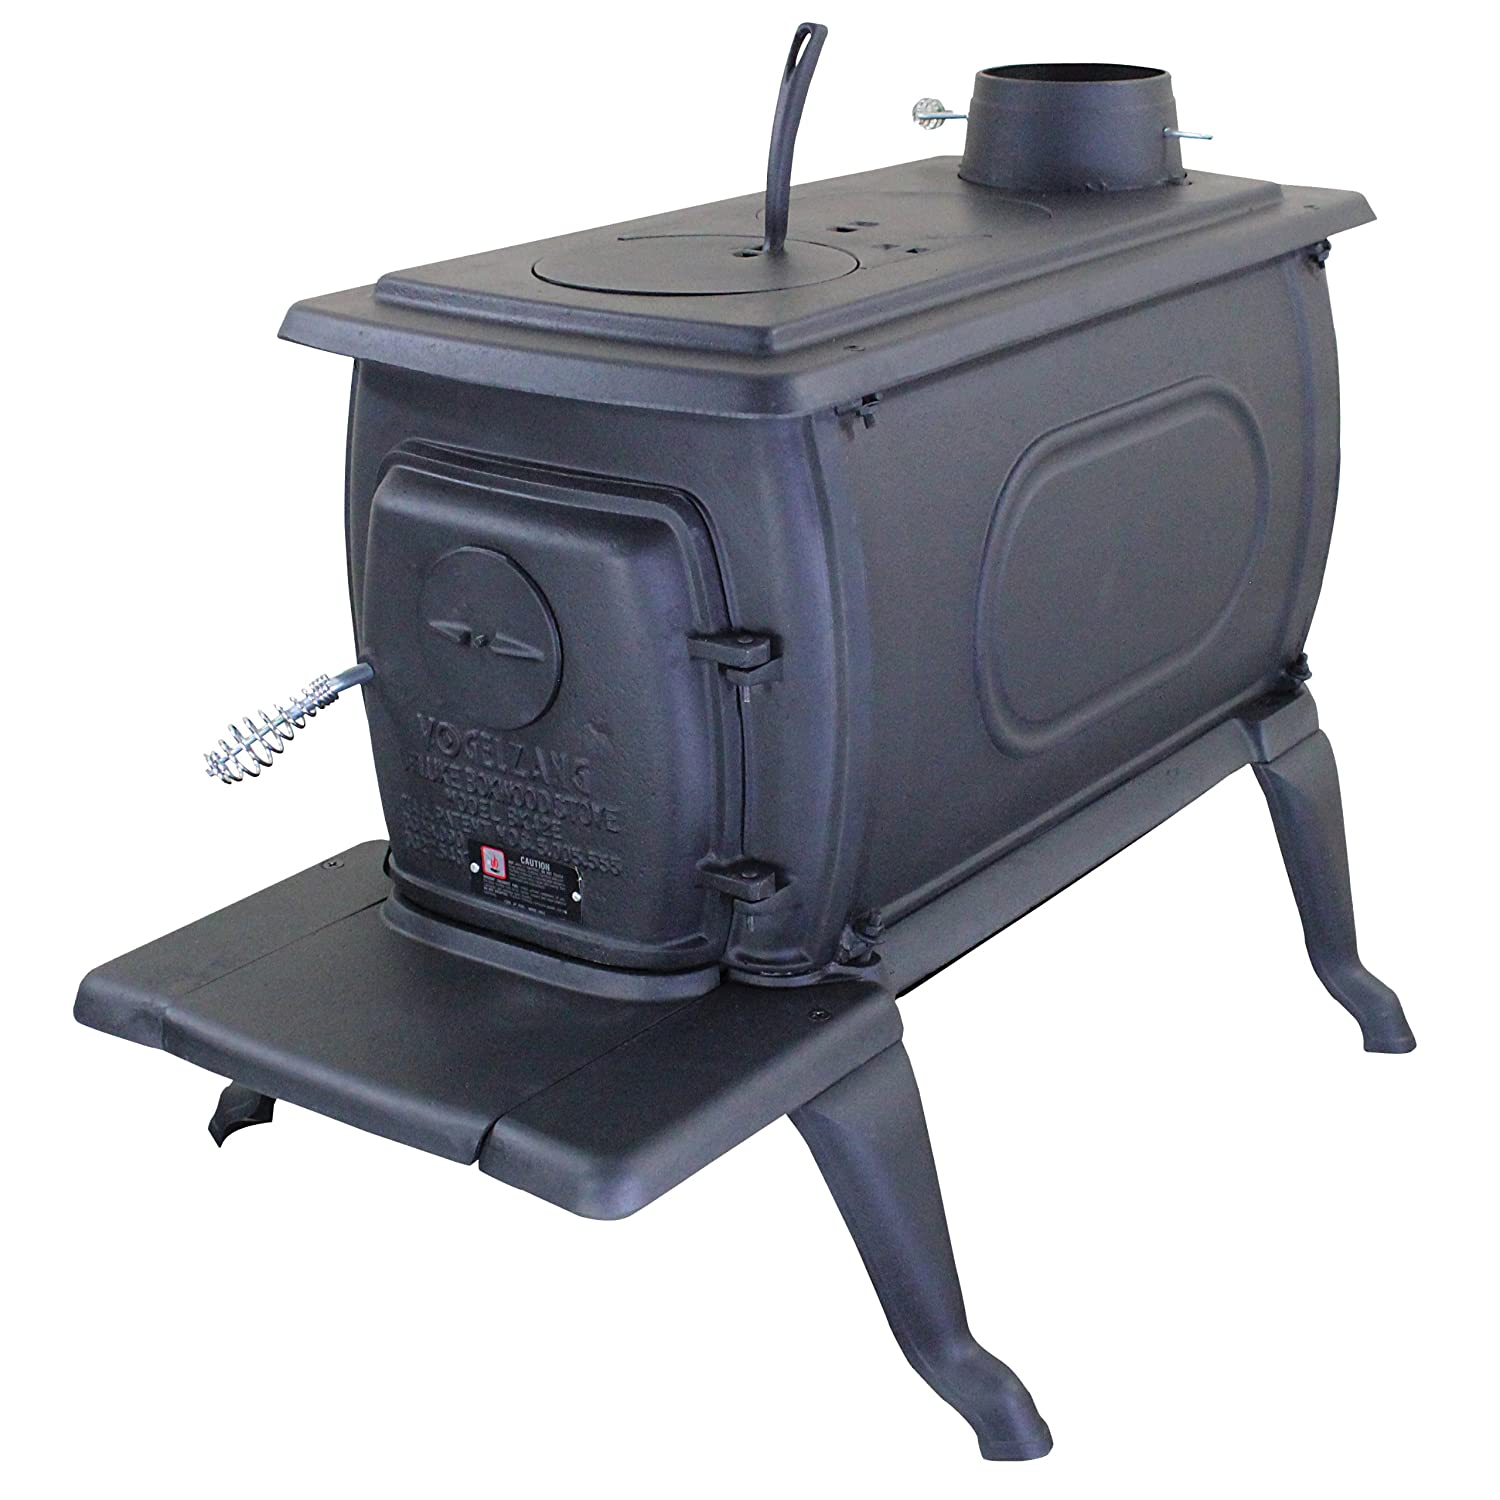 Wood stove reviews gear and review board forums